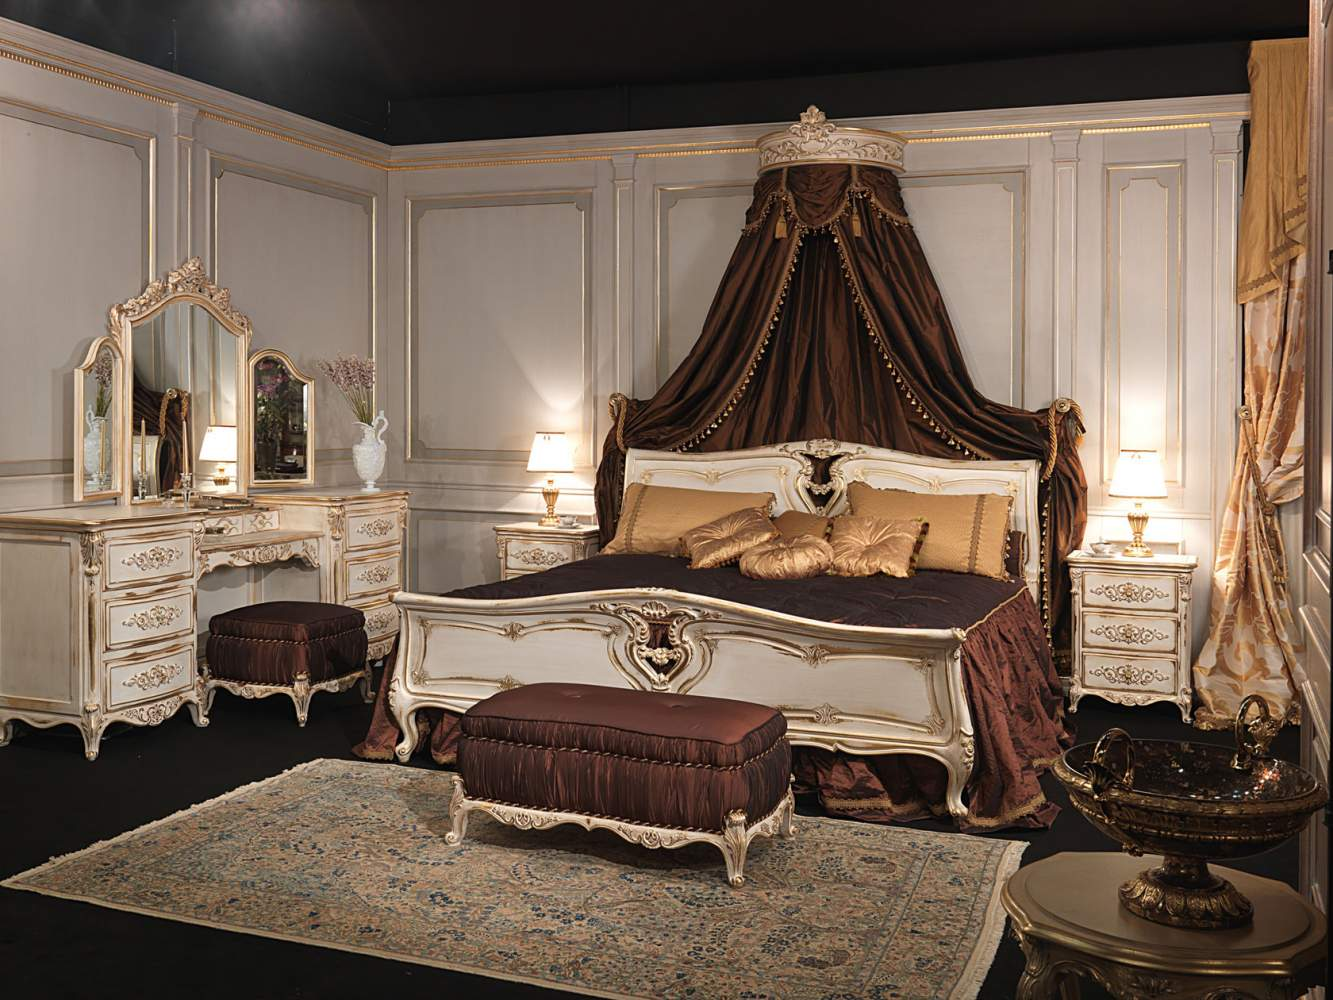 Classic Louis XVI bedroom, bed in carved wood with wall baldaquin, night table and dressing table with mirror, upholstered bench and pouf